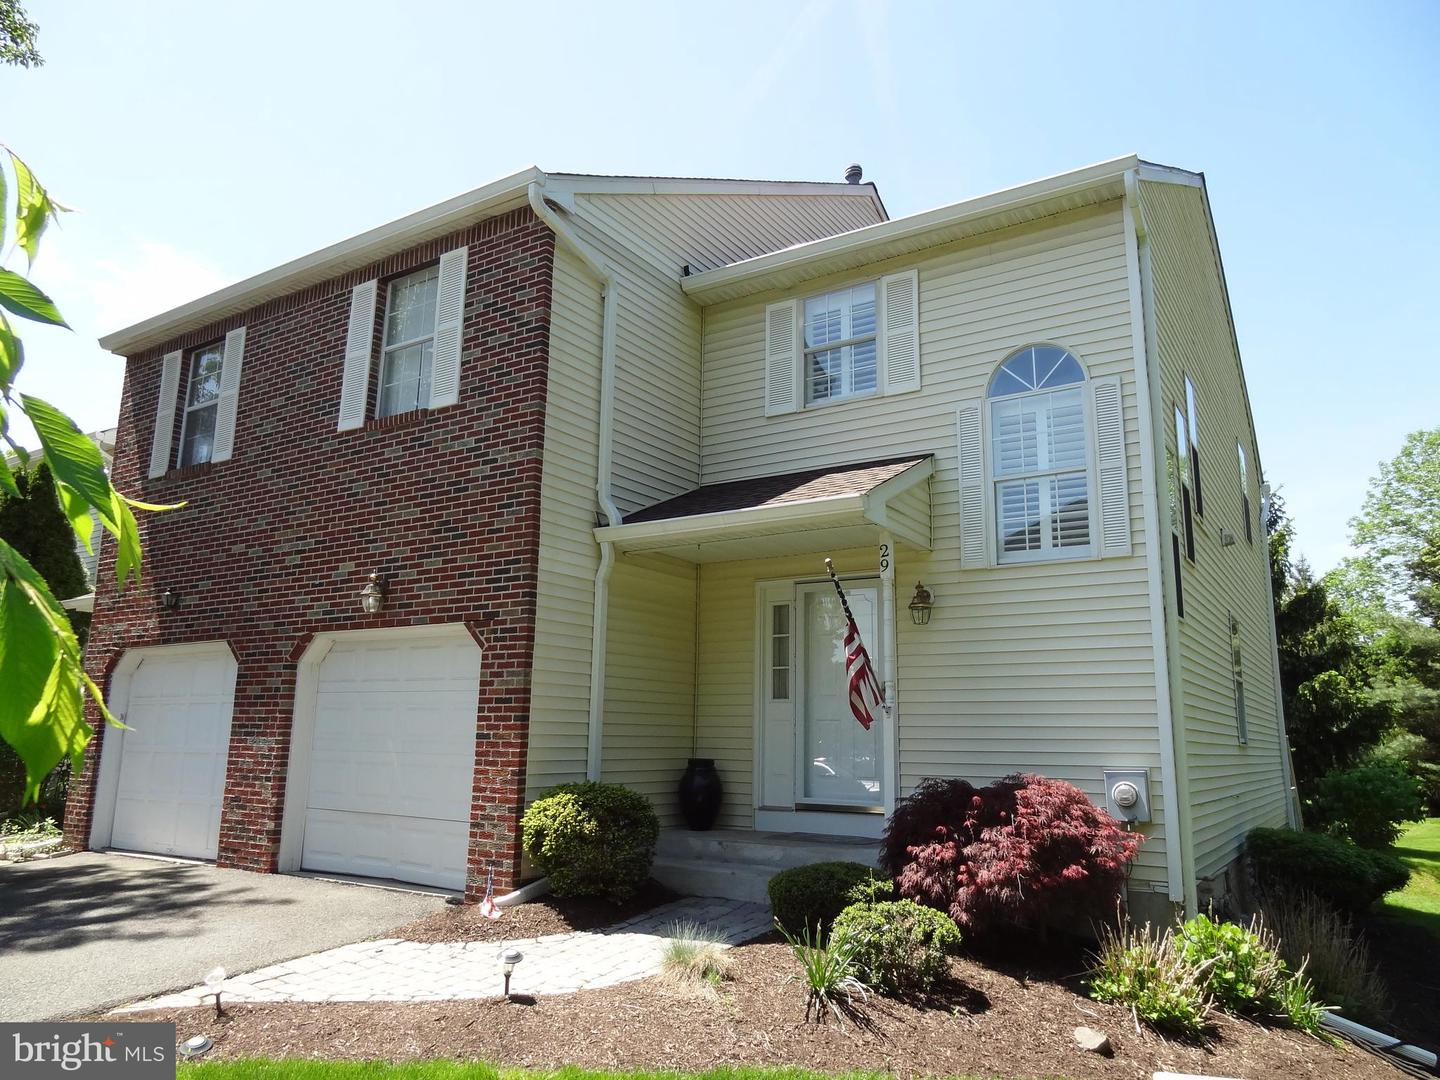 29 REVERE CT, EWING, NJ 08628